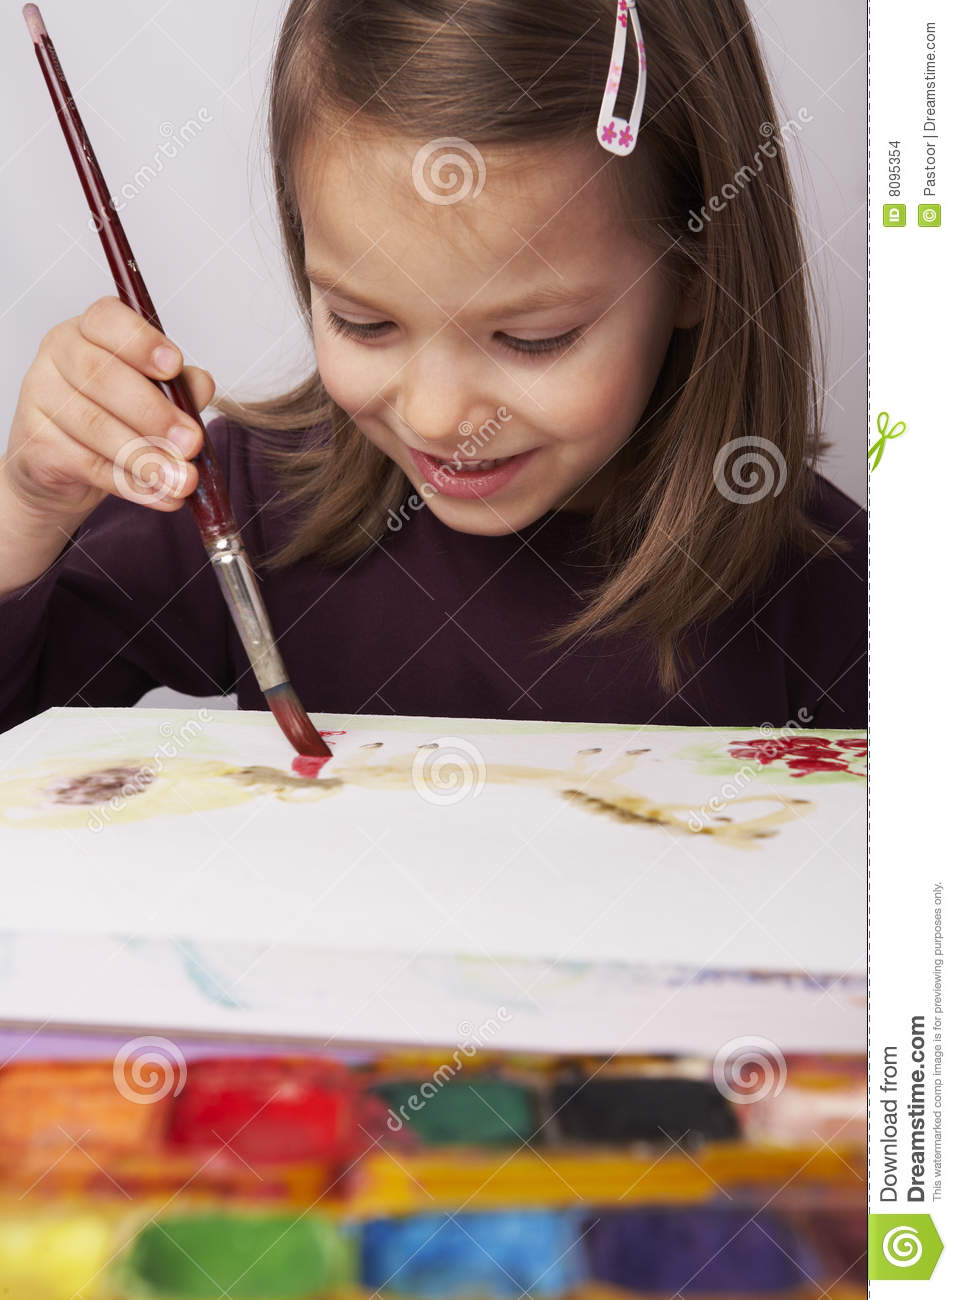 Young girl painting picture